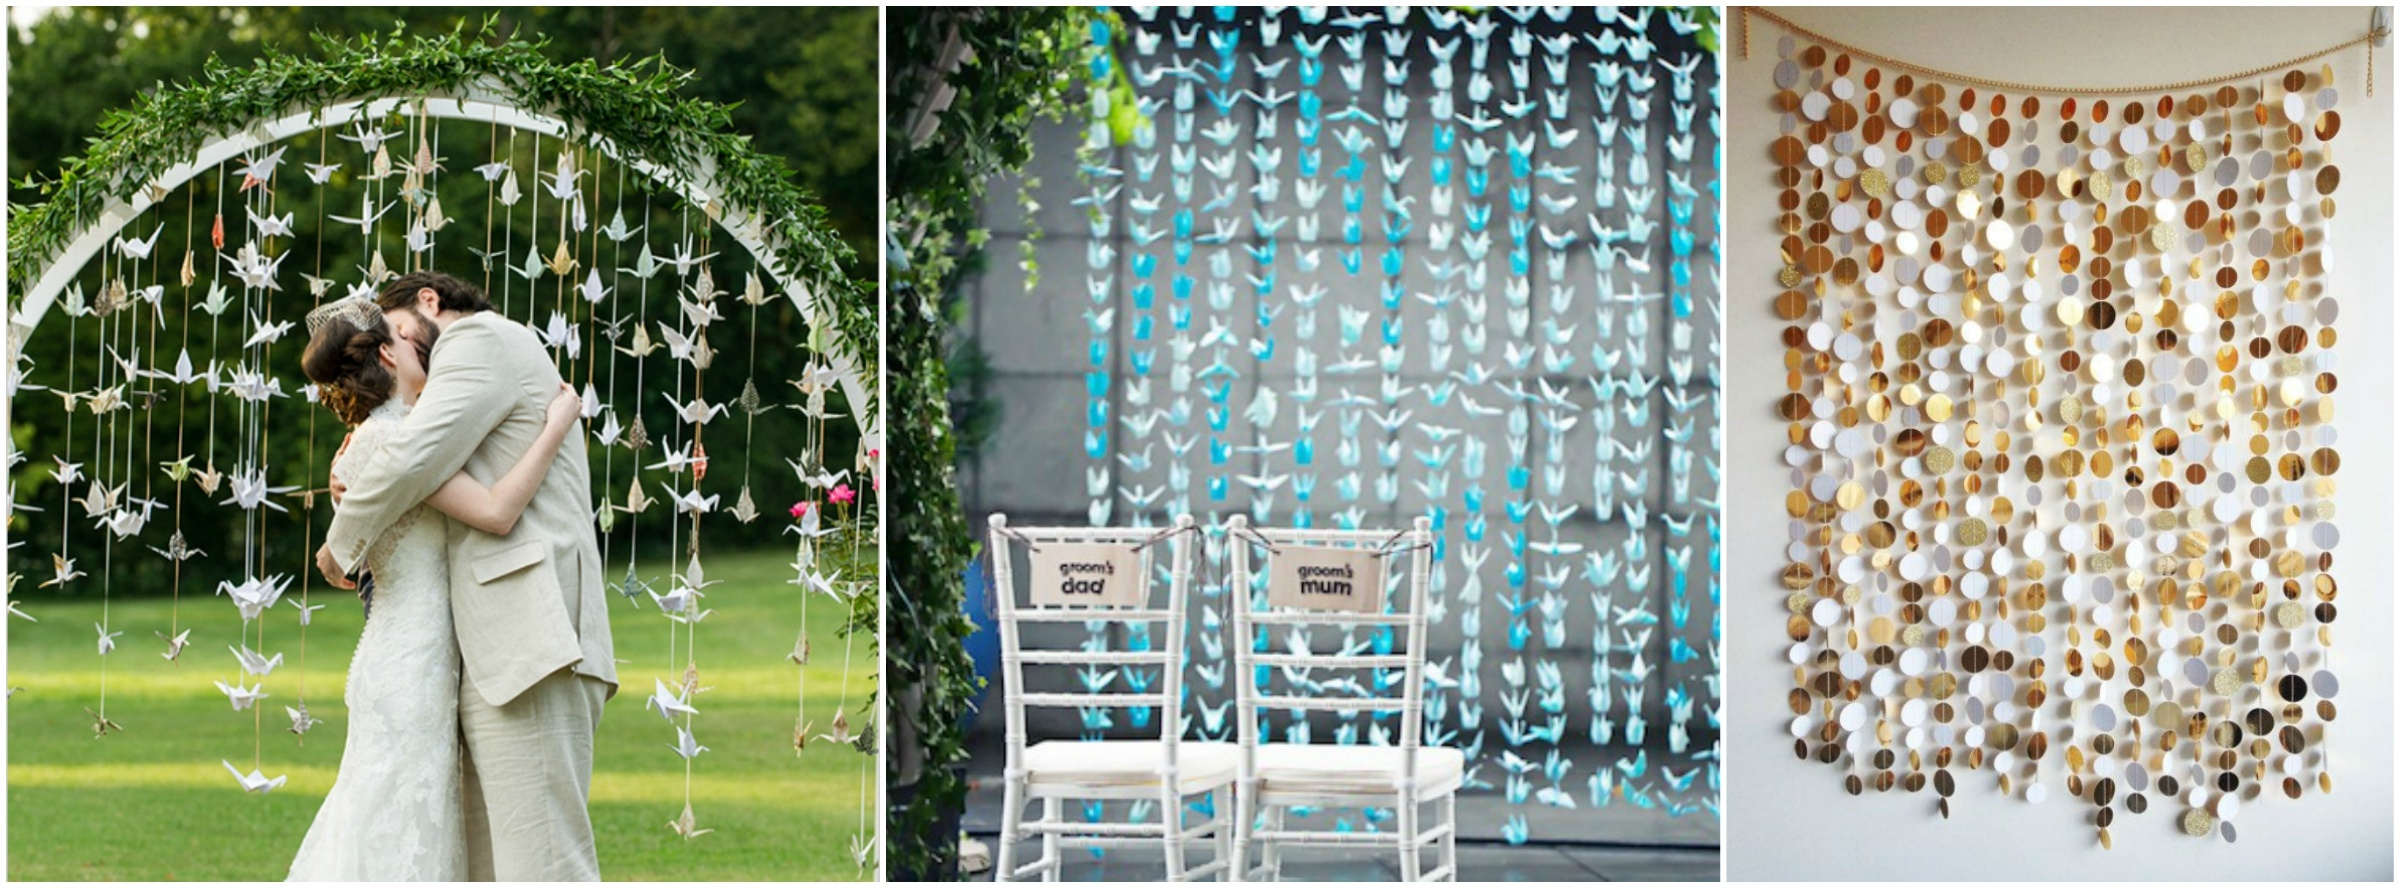 un d cor de photobooth diy pour votre mariage ou votre f te le blog de modern confetti. Black Bedroom Furniture Sets. Home Design Ideas